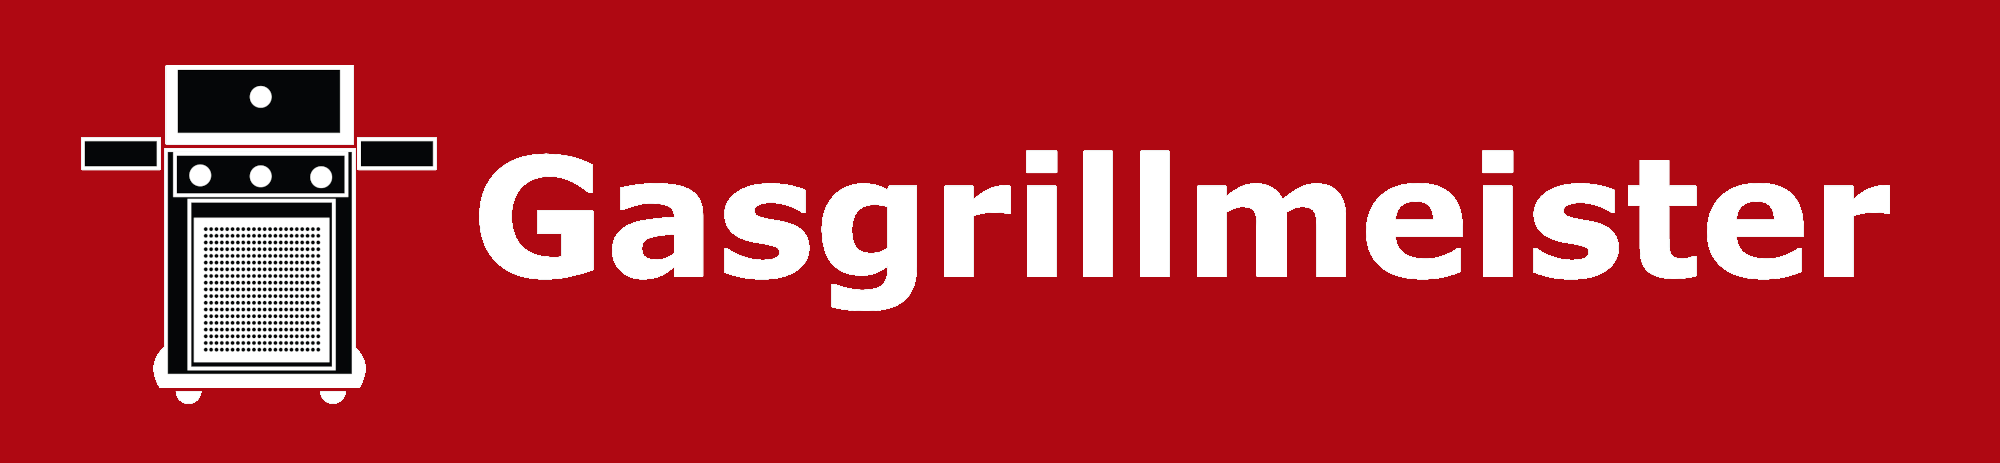 Gasgrill-Meister